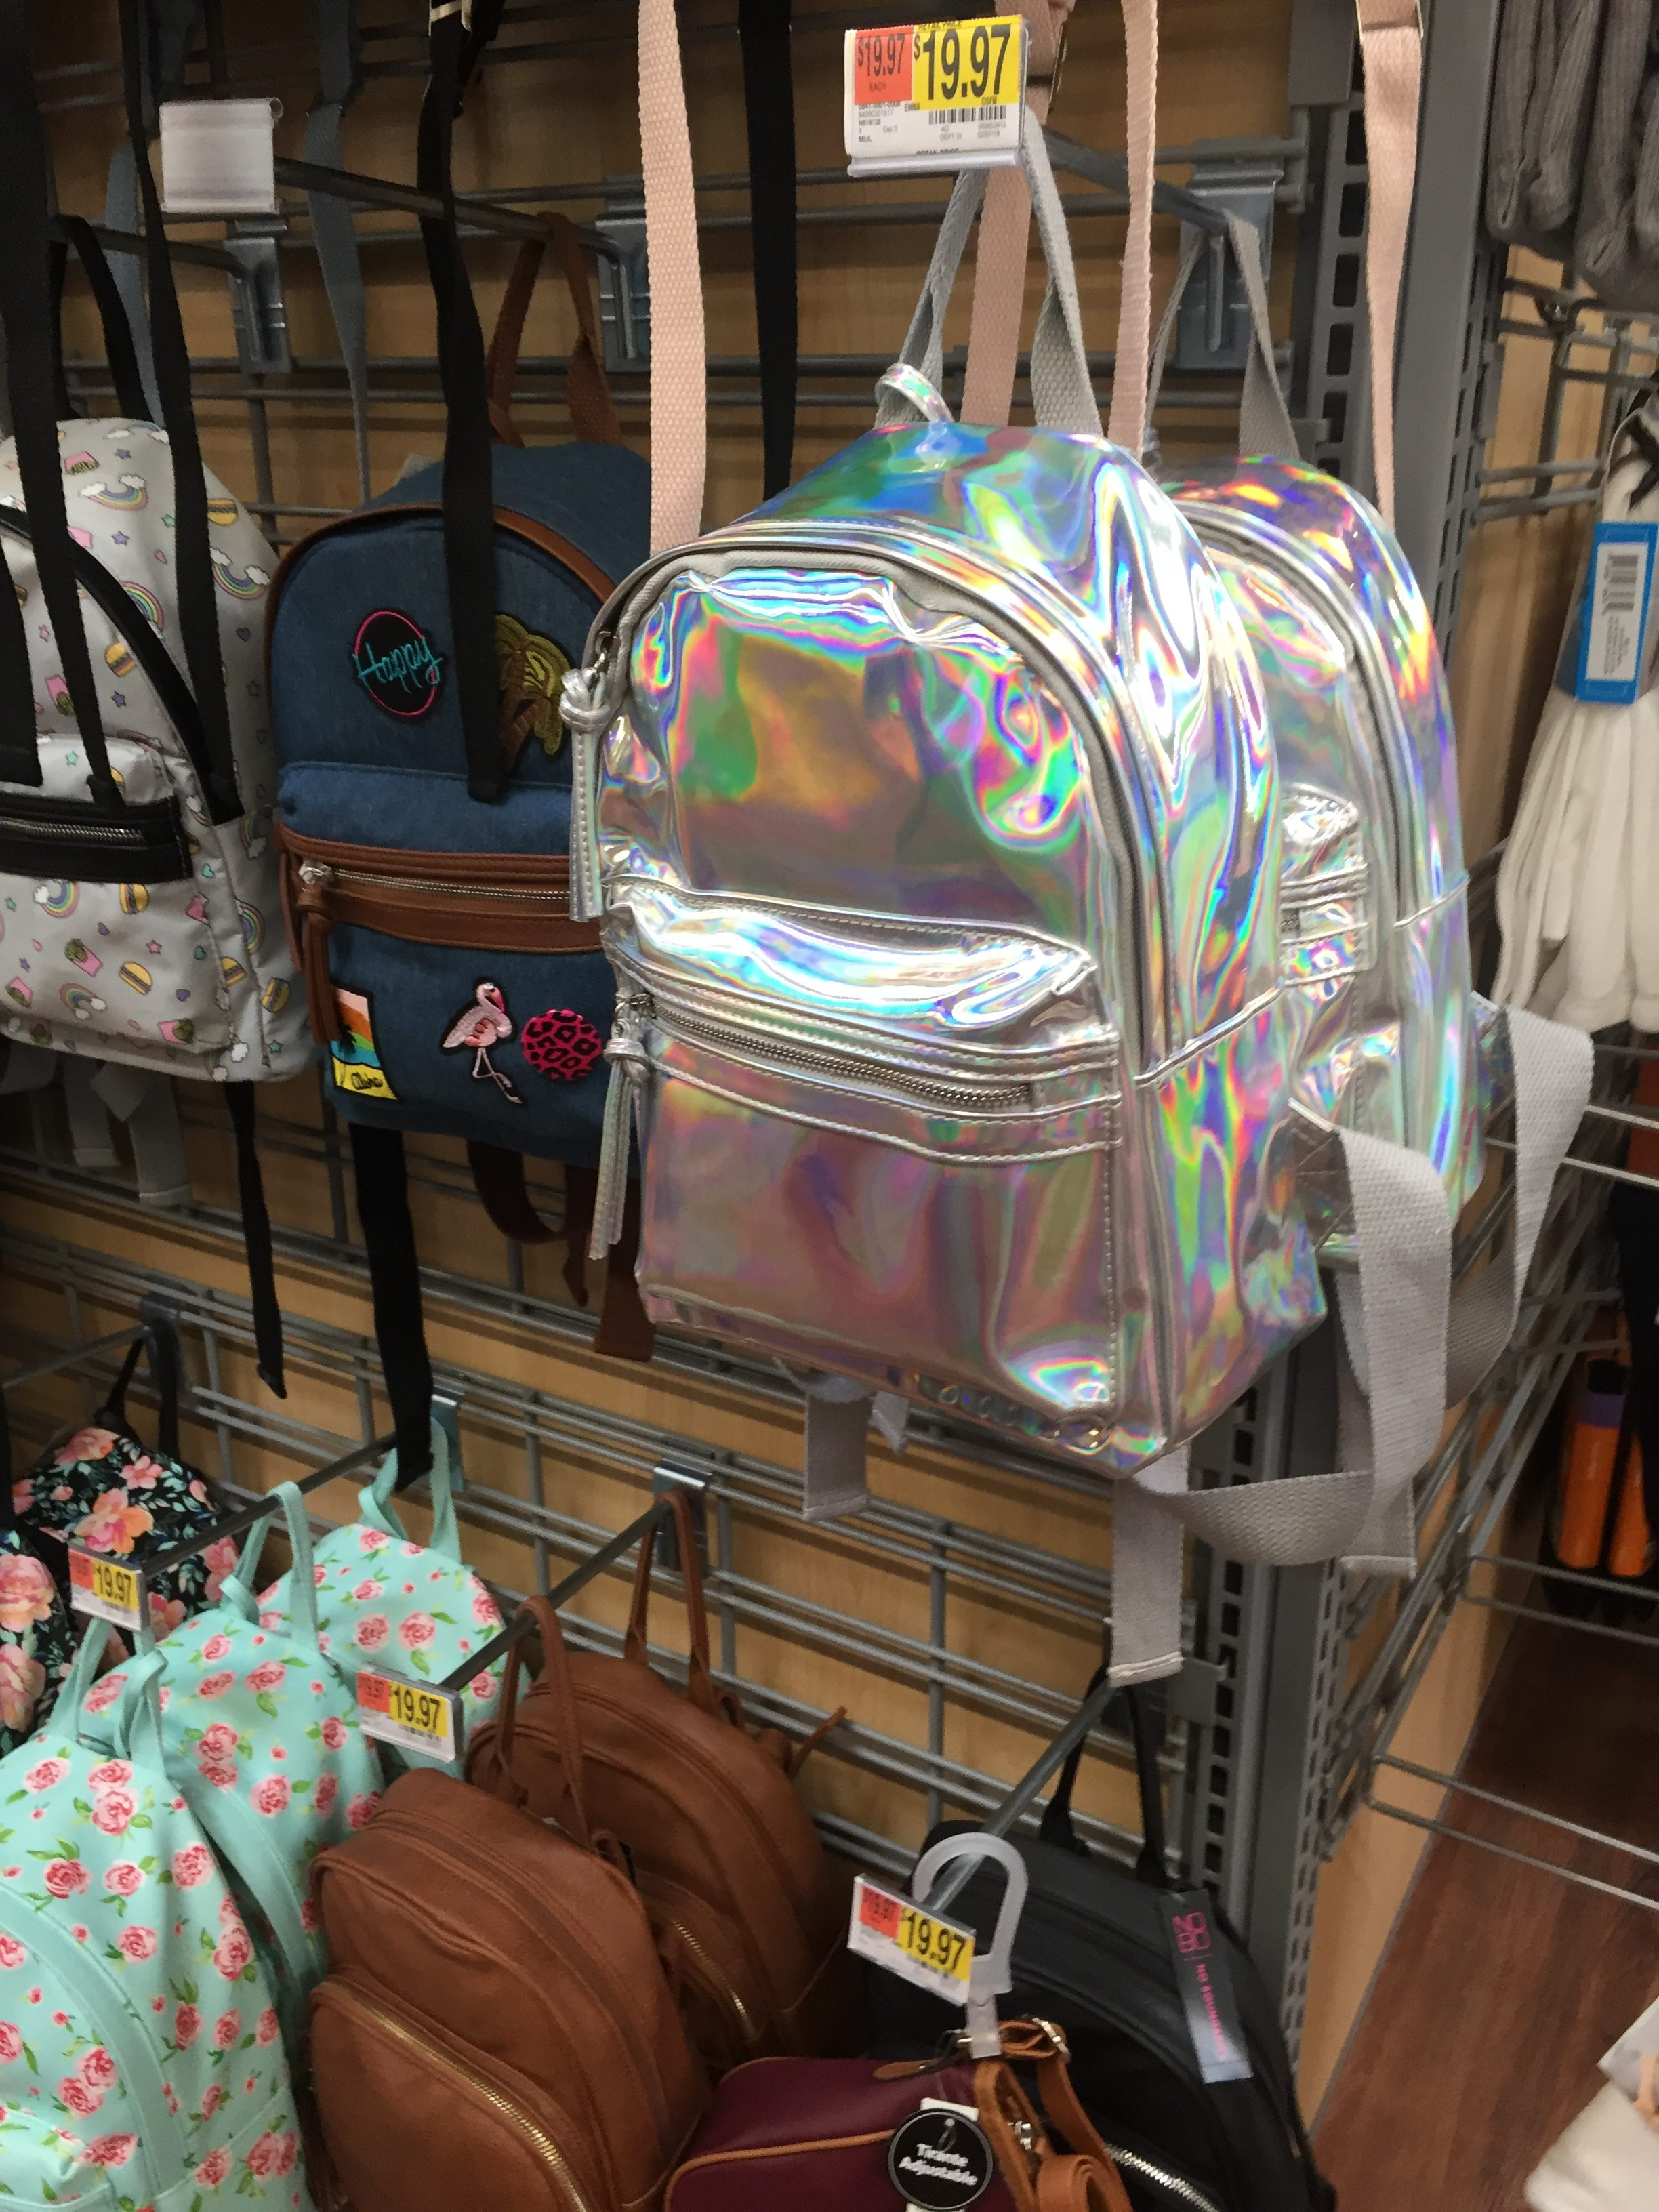 This backpack reminded me of Luciana's.